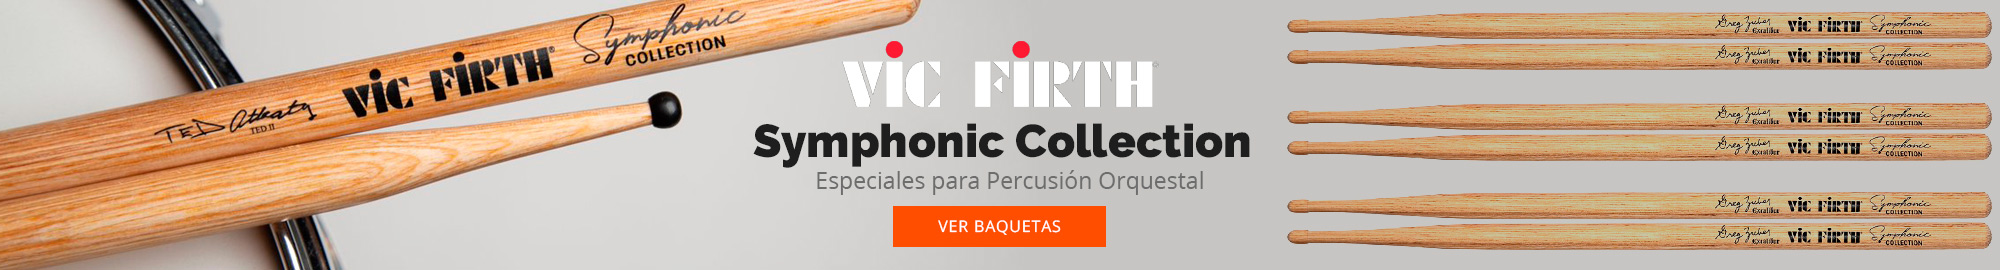 Vic firth Symphonic Collection